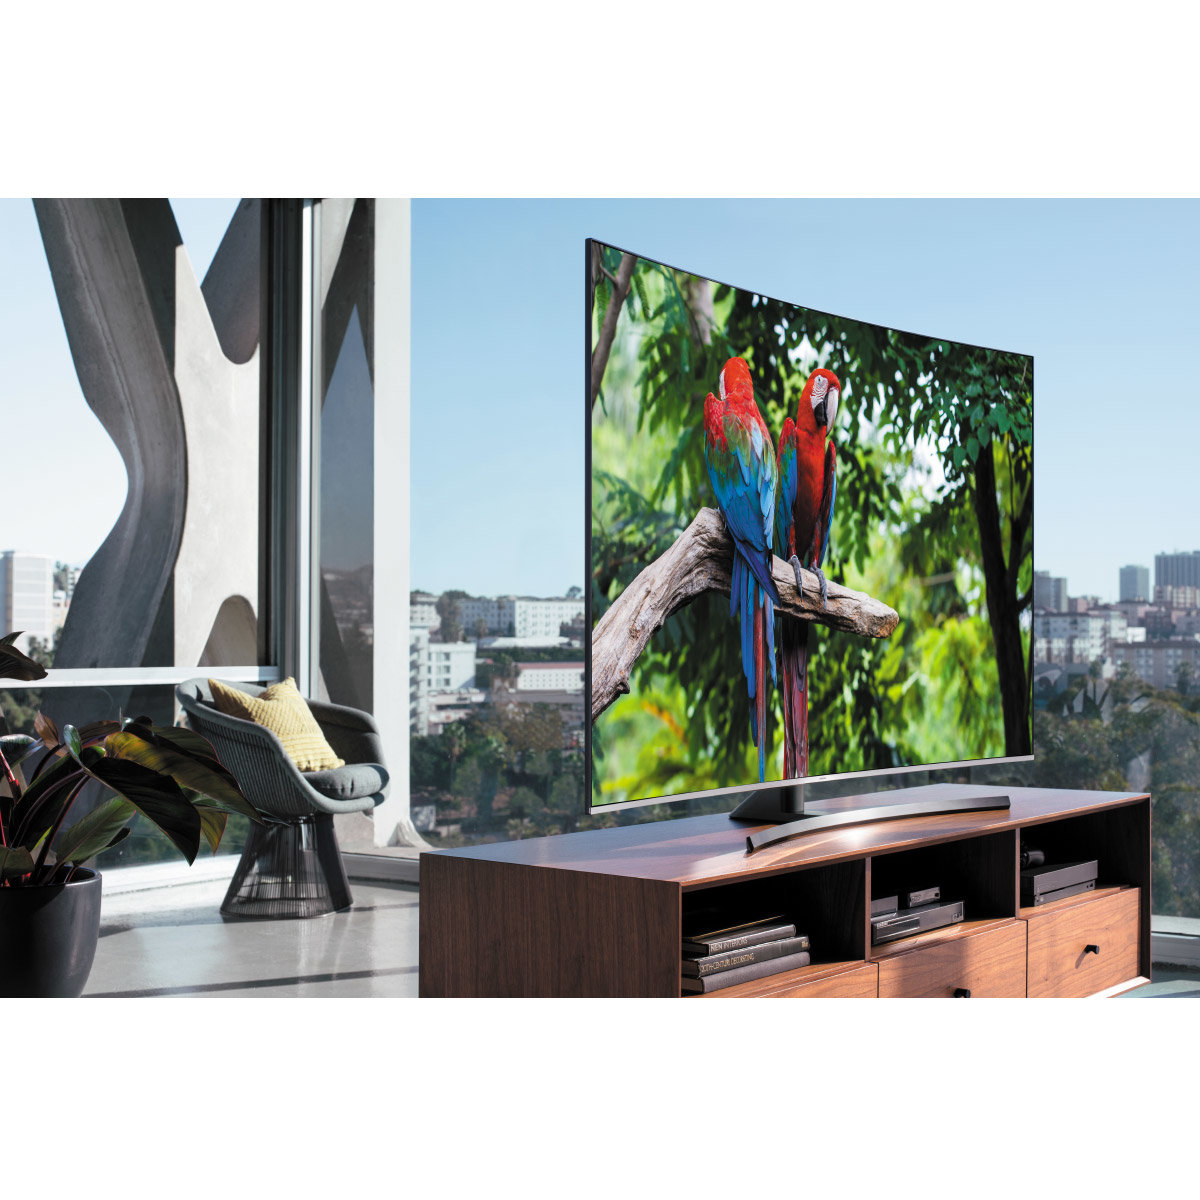 Samsung UA65NU8500 65 Inch 165cm Smart 4K Ultra HD Curved LED LCD TV